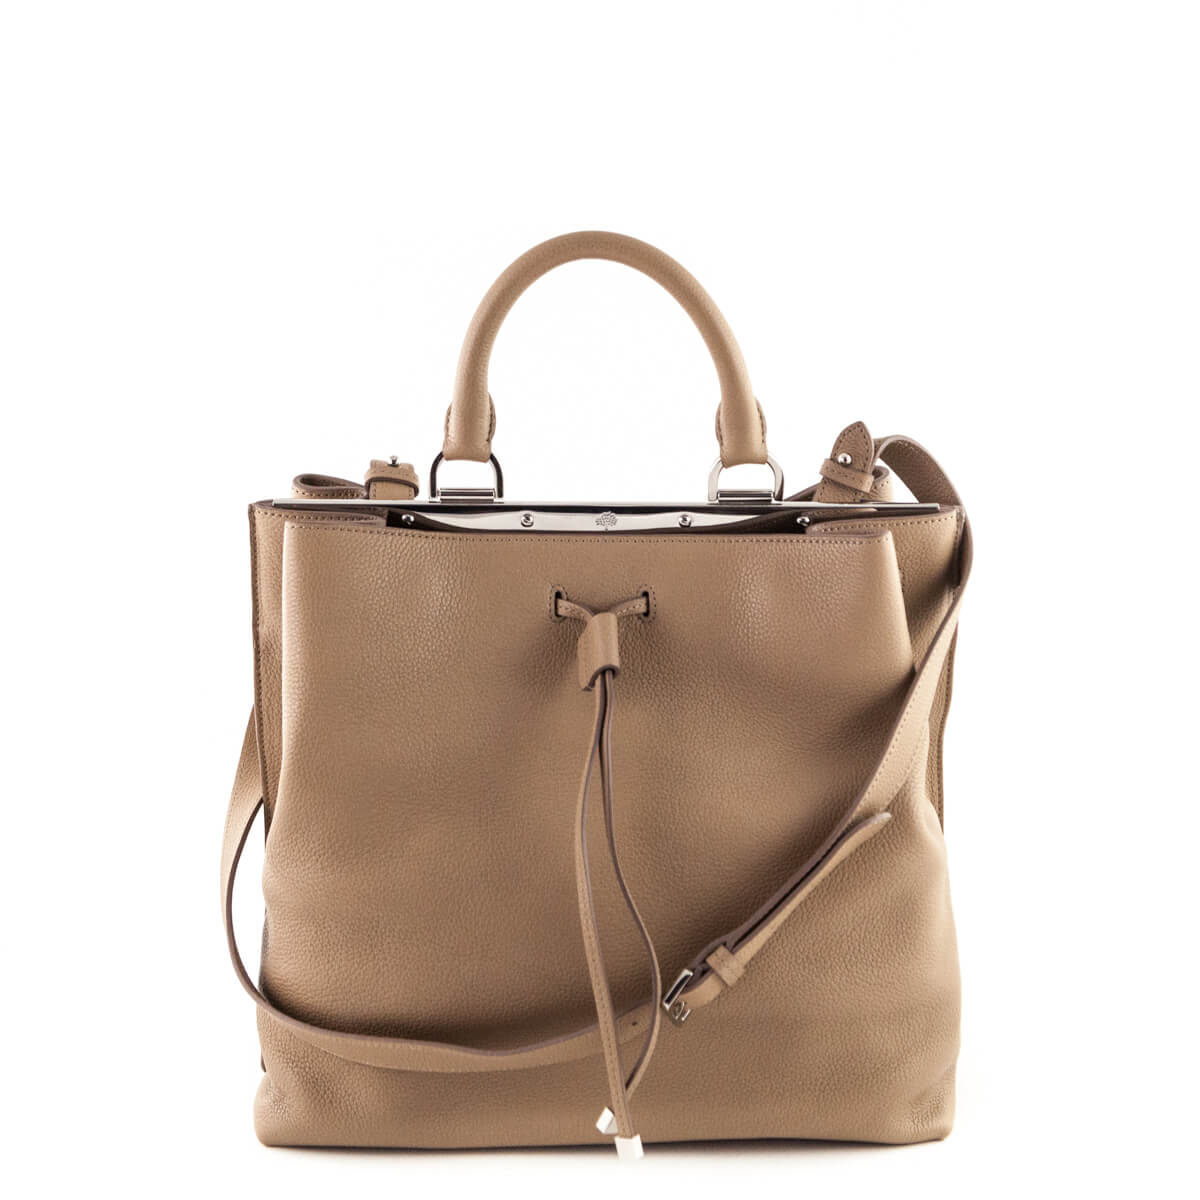 c47c3932a95d Mulberry Mushroom Kensington Bag - LOVE that BAG - Preowned Authentic  Designer Handbags ...